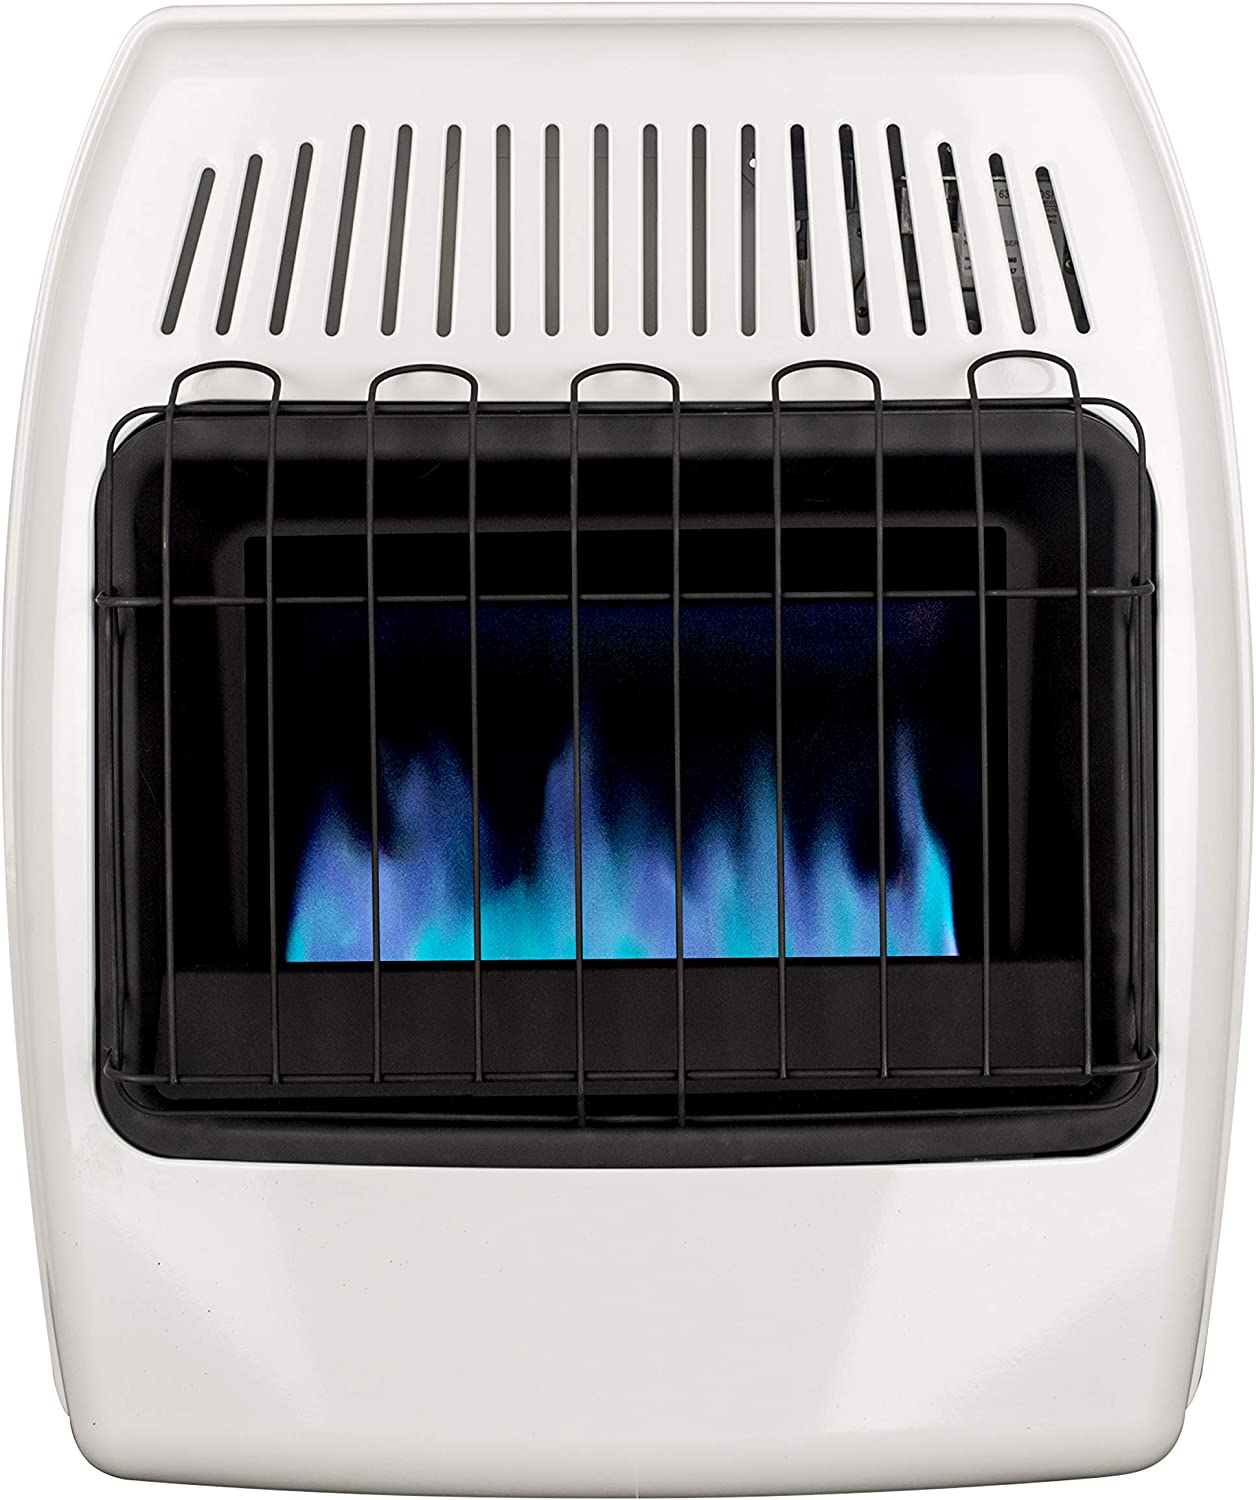 Dyna-Glo 20,000 BTU Natural Gas Blue Flame Vent Free Wall Heater, White